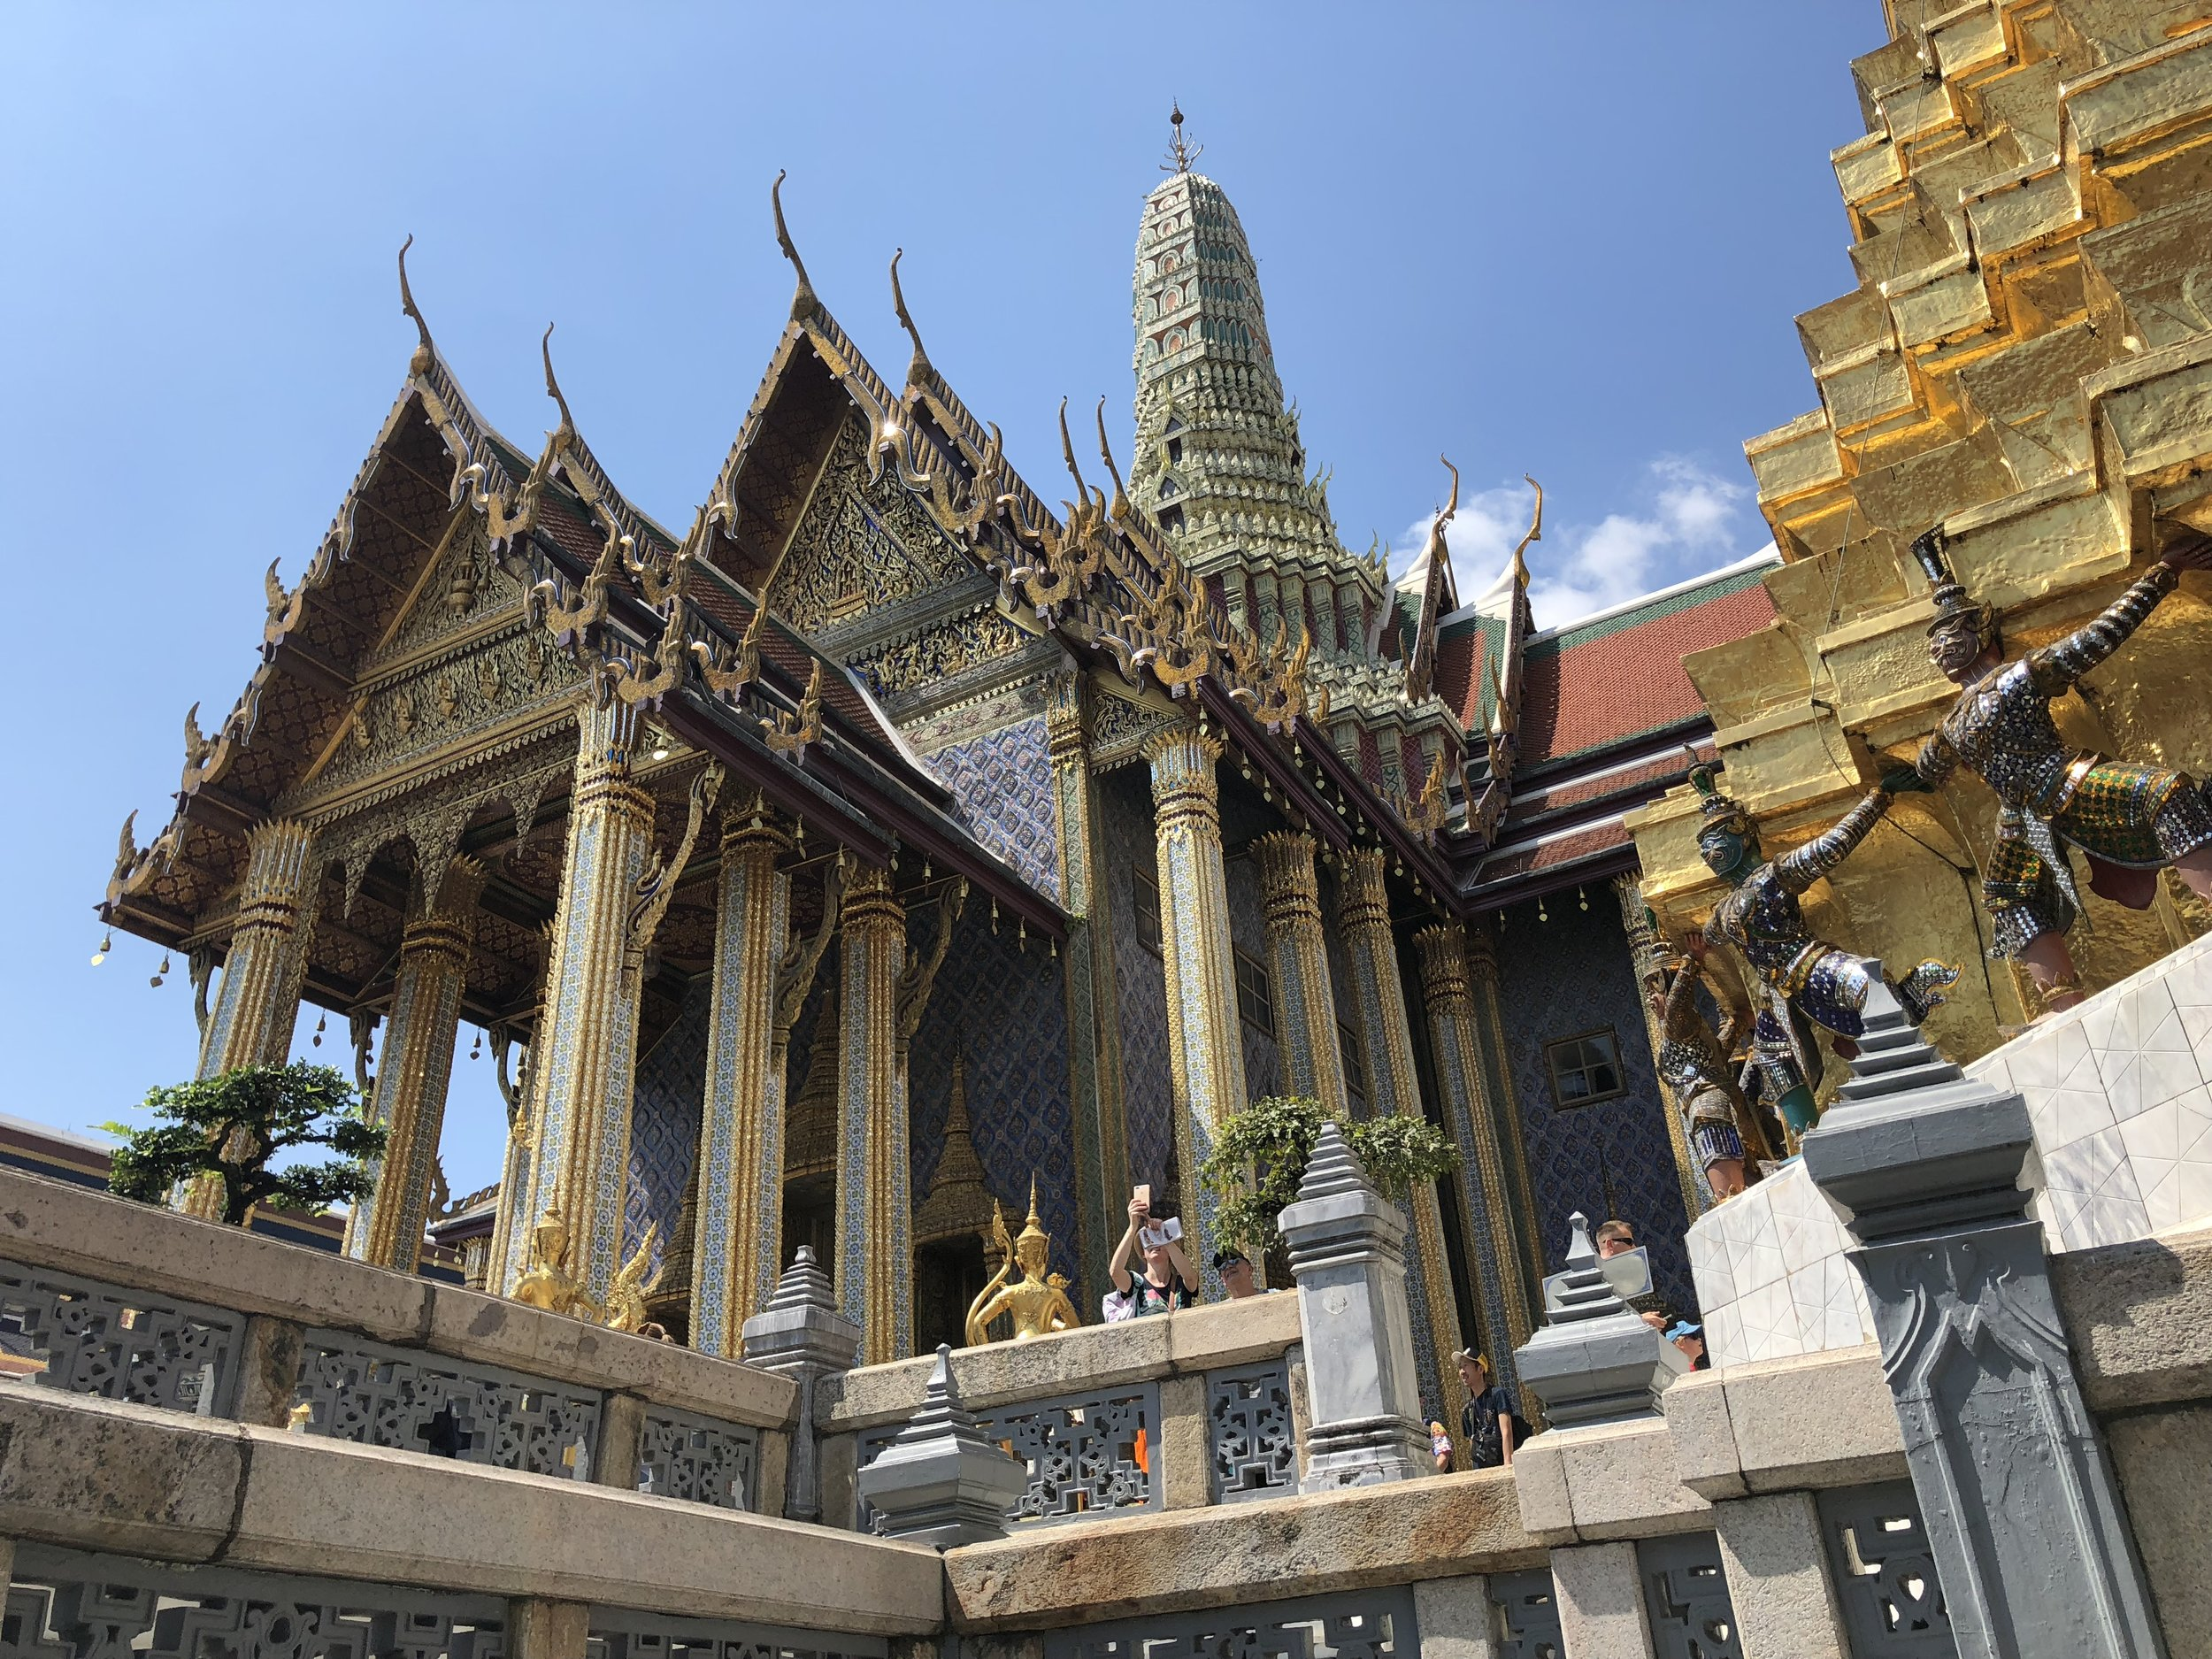 The exquisiteness of the temples leaves me speechless! I've never seen something like this.